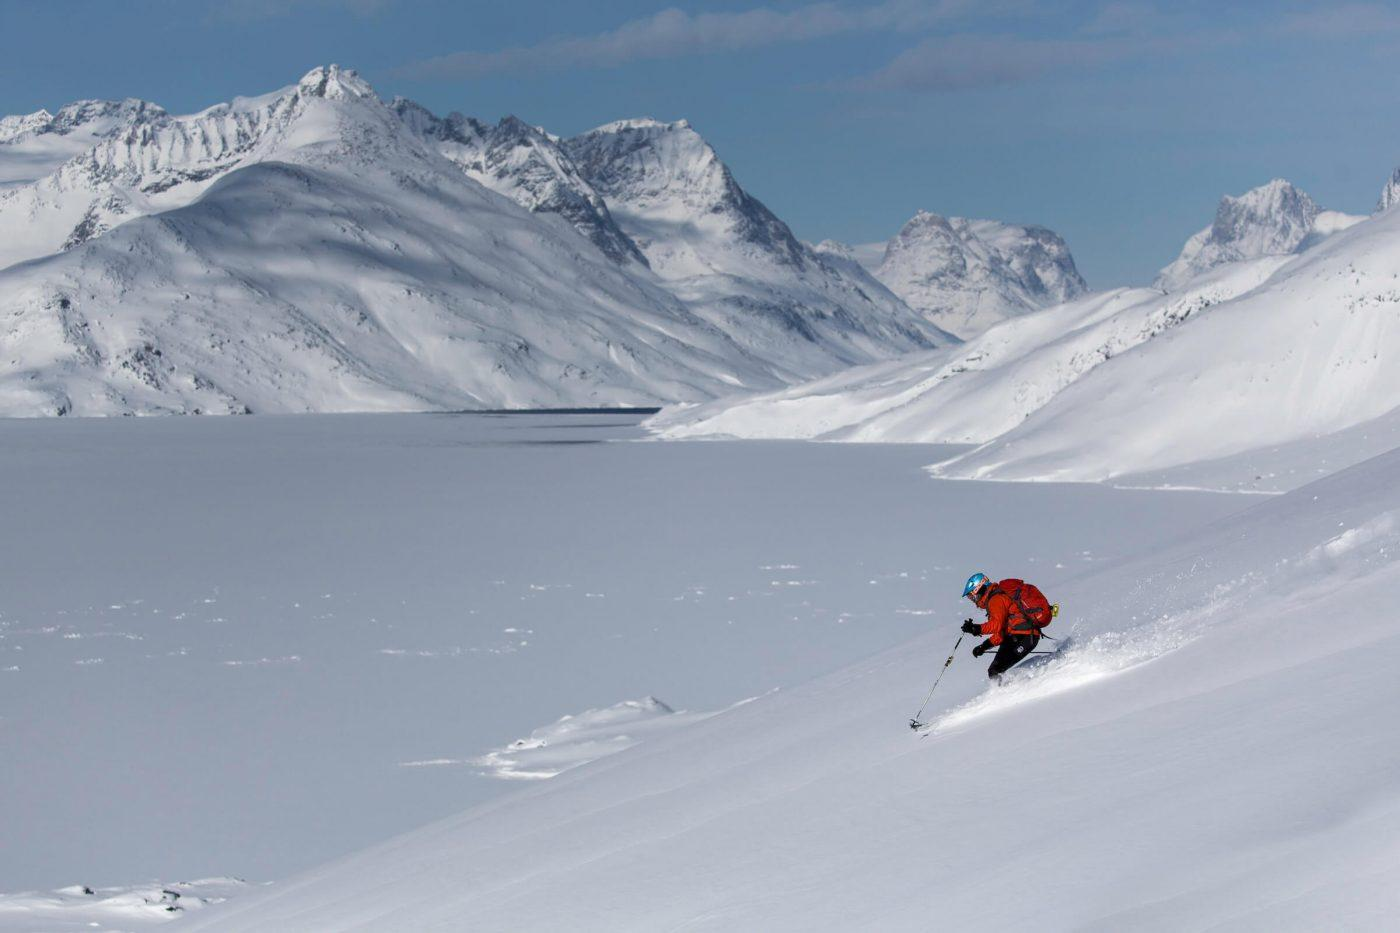 Skiing in Kuummiut, east Greenland. Photo by Mads Pihl